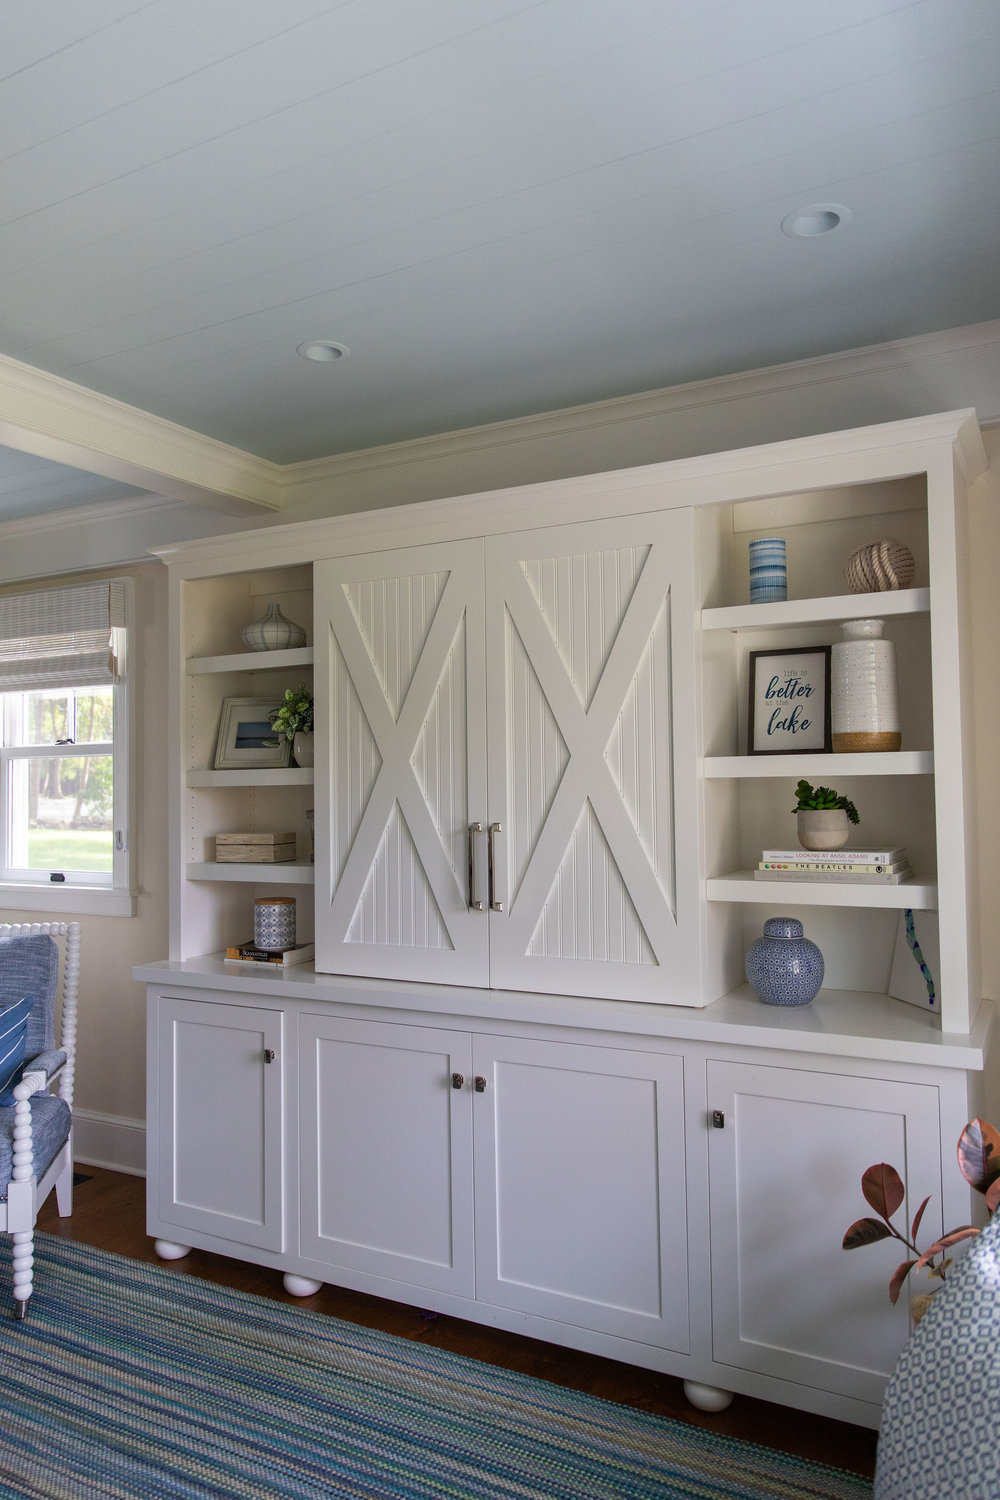 Built in storage ideas by Teaselwood Design, Skaneateles, New York interior designer